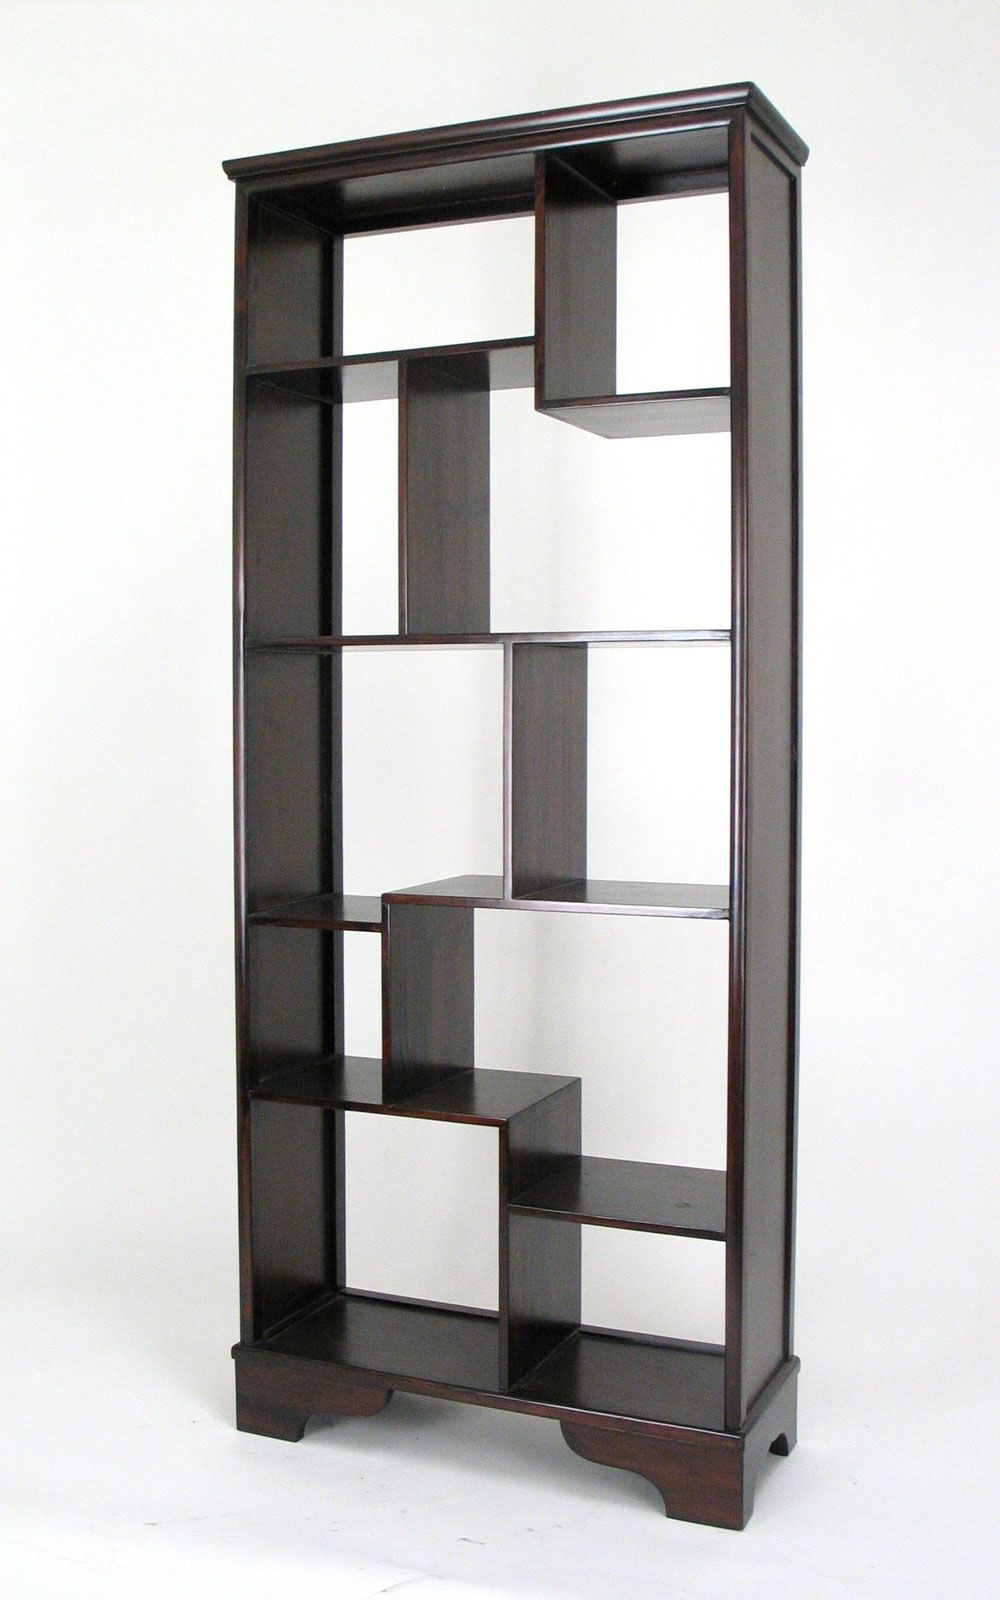 Vertical Asian Storage Shelves by Wayborn